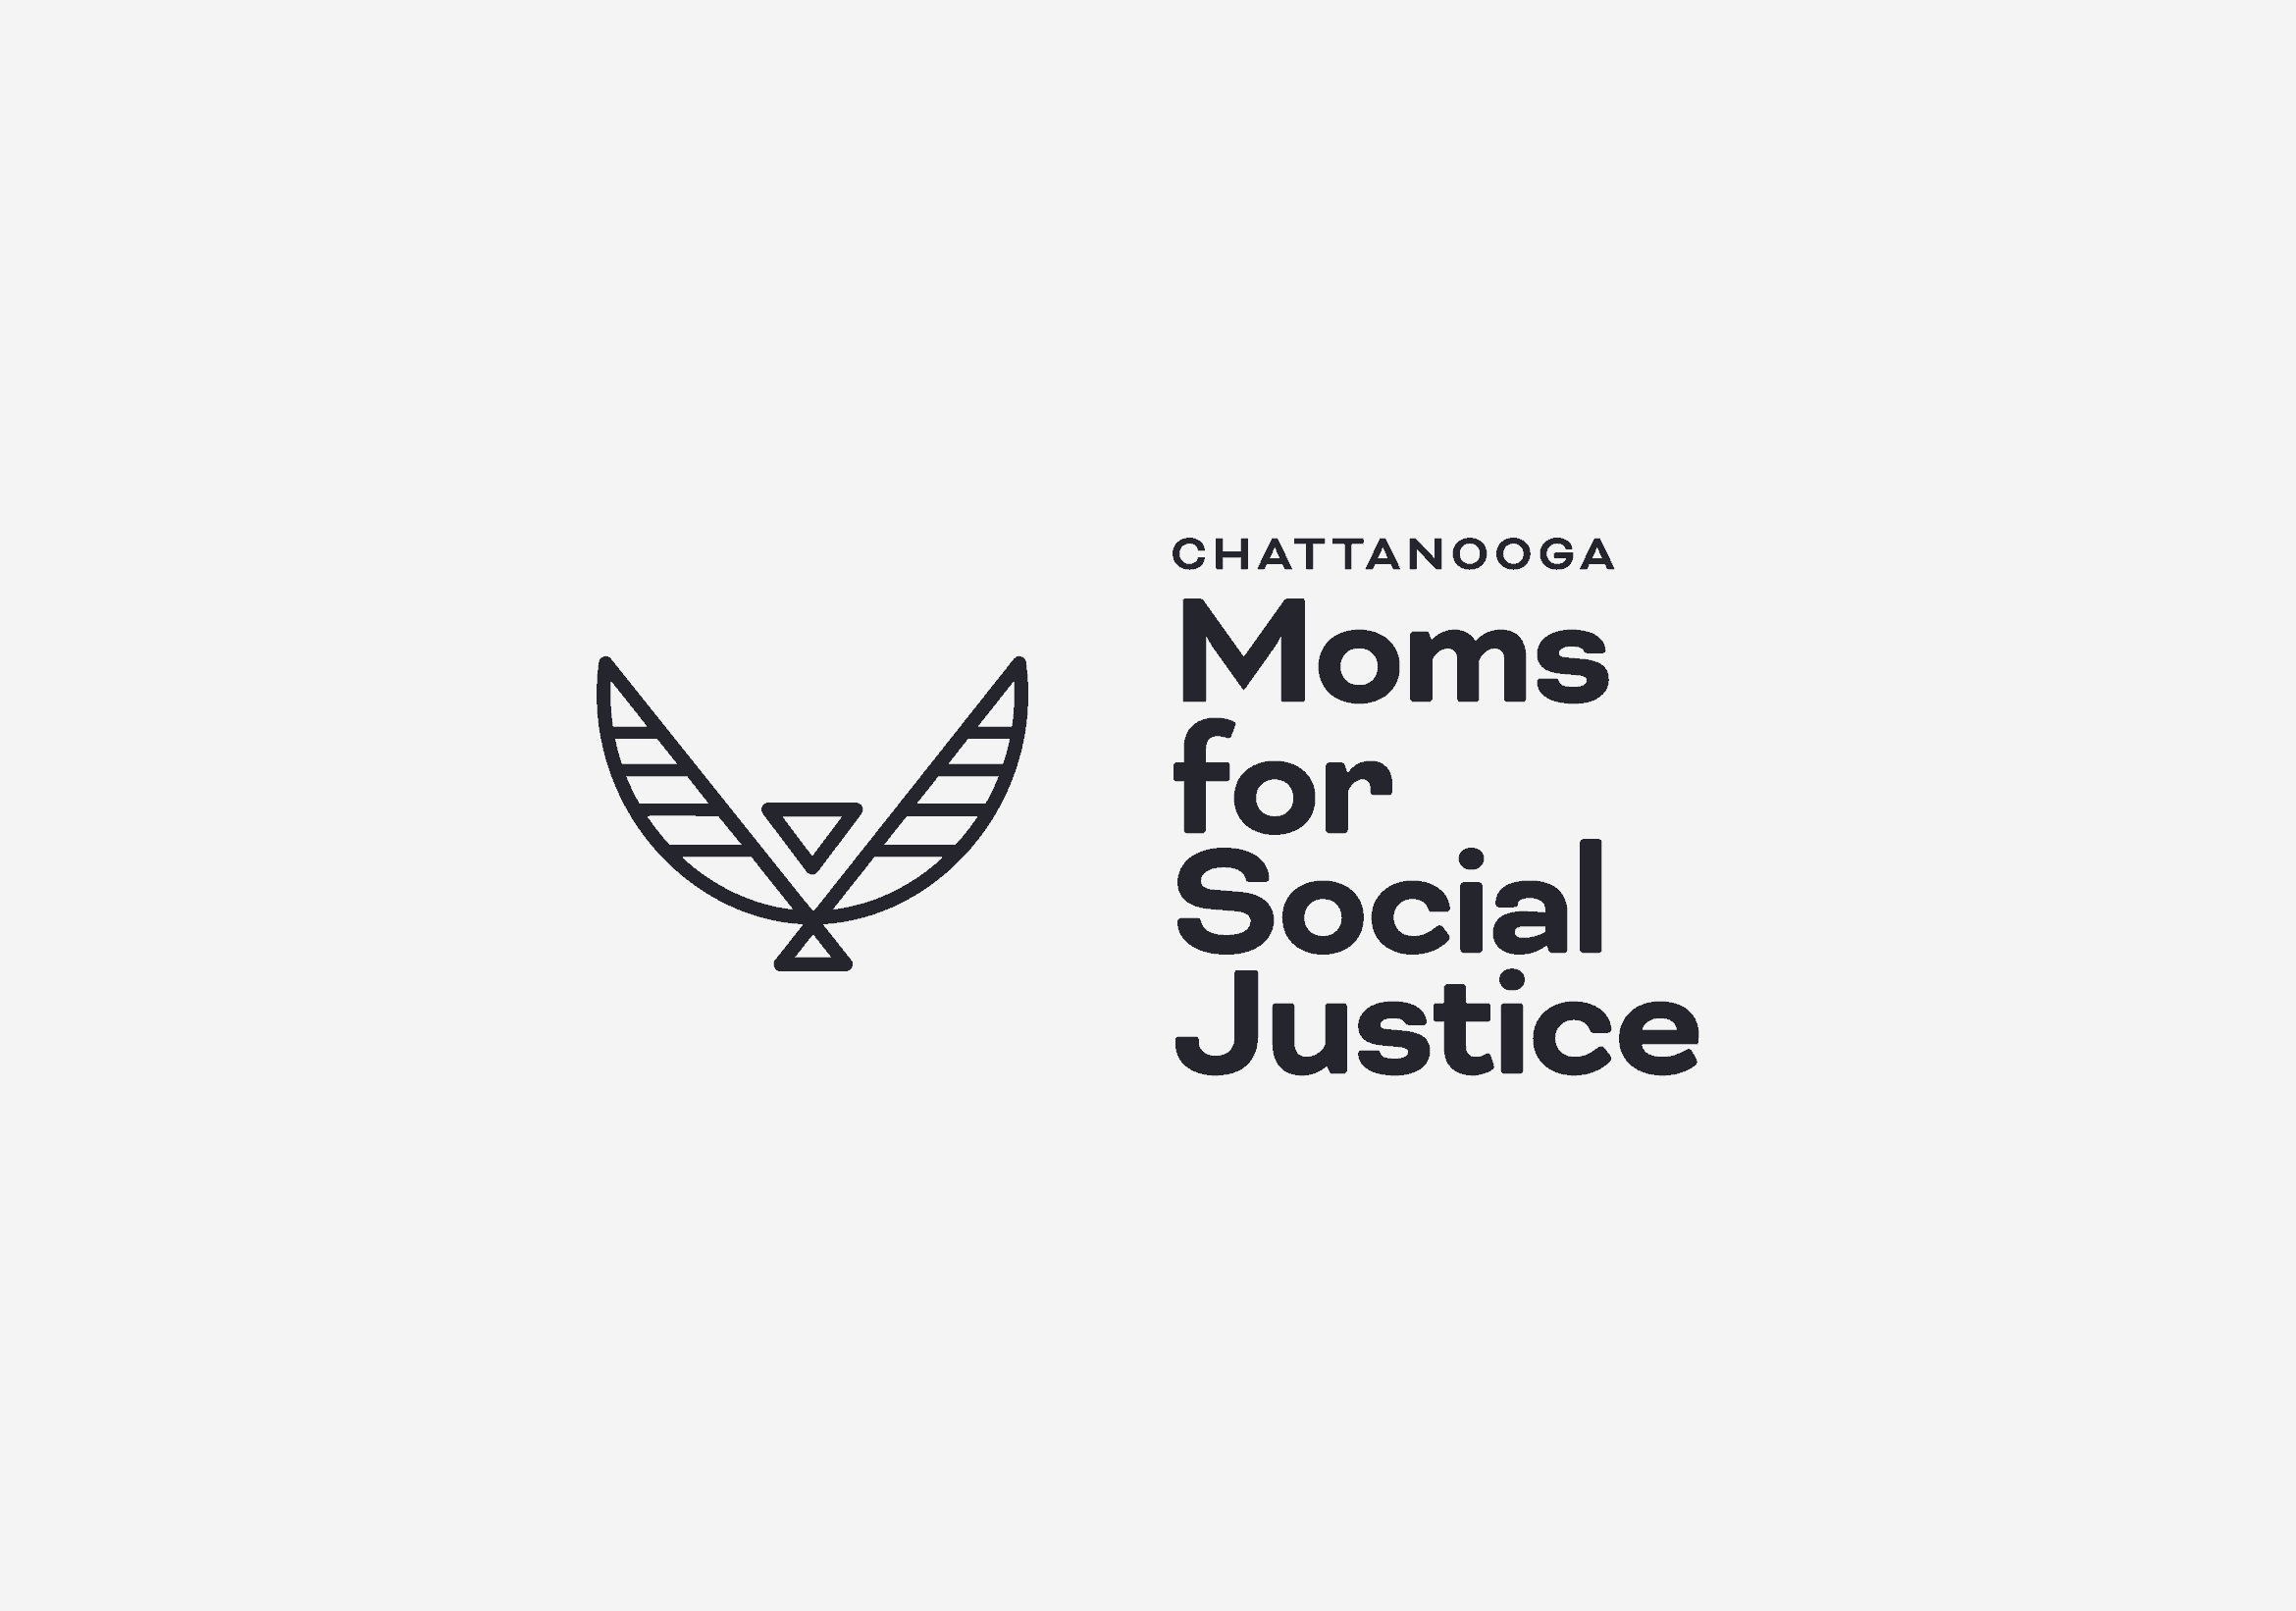 logos-moms-for-social-justice@2x